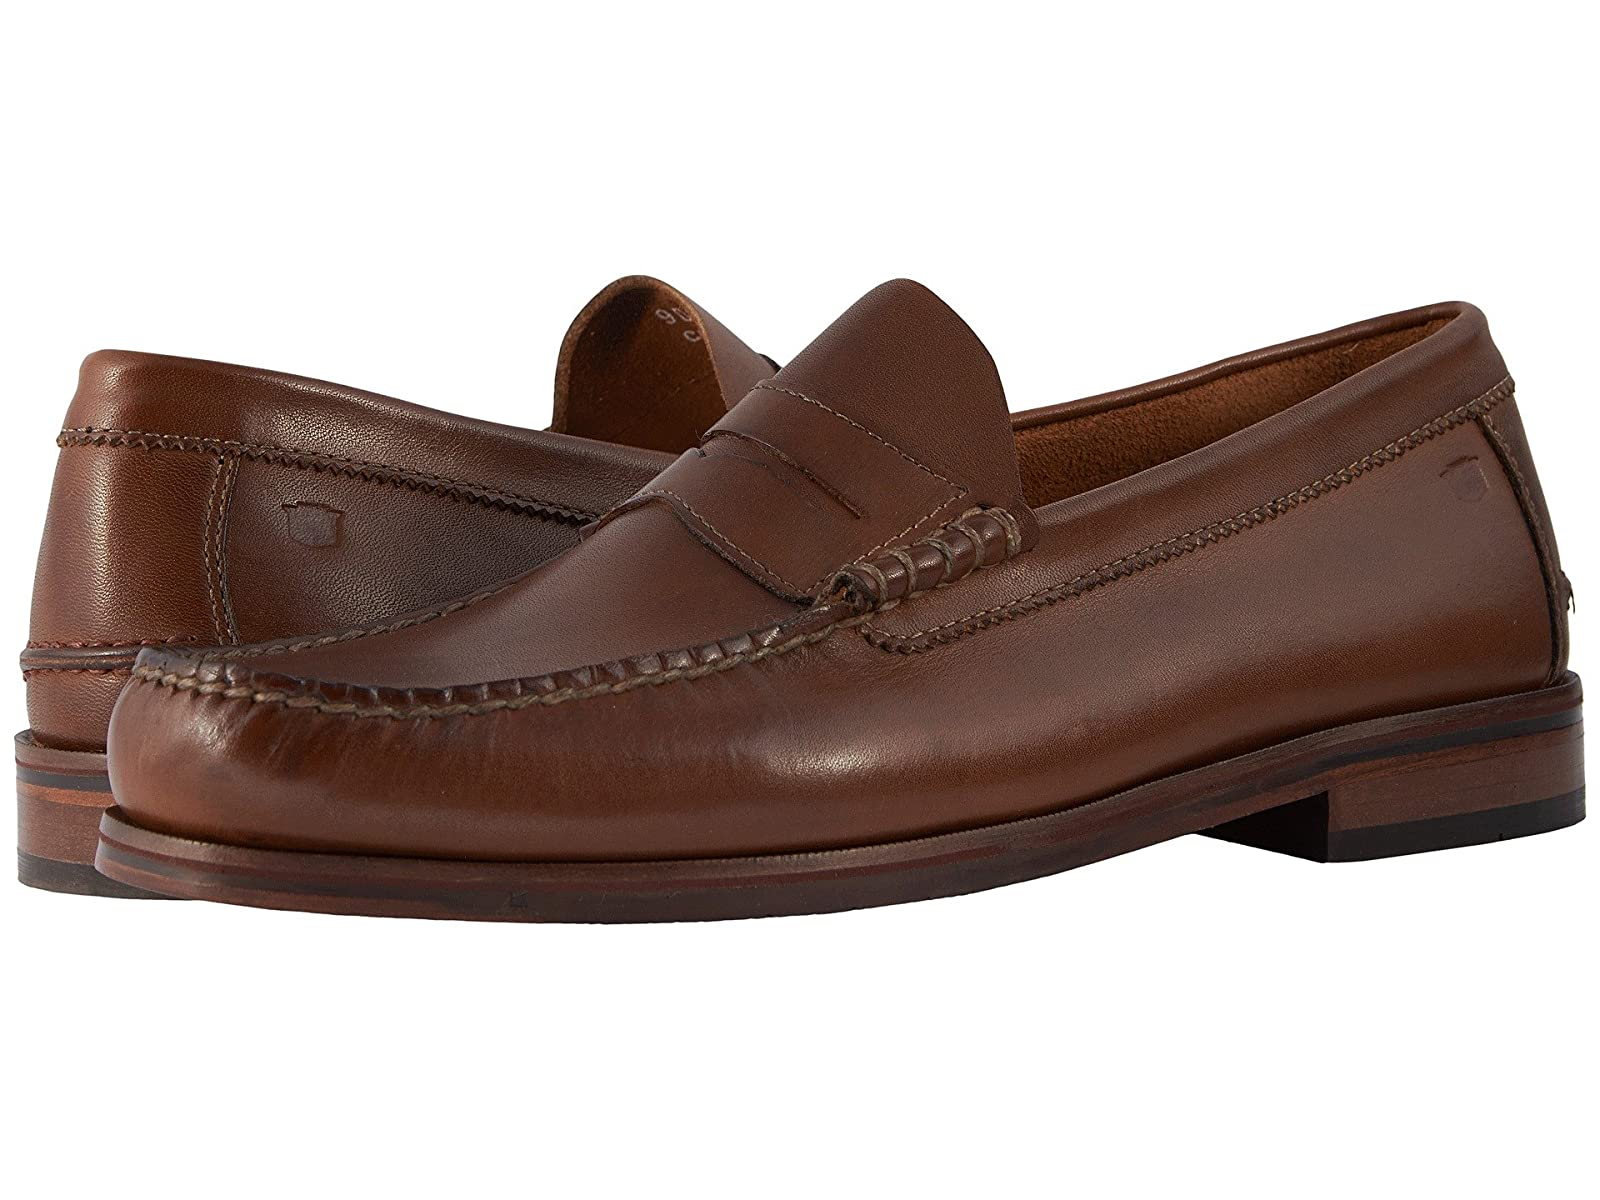 Florsheim Heads Up Penny LoaferAtmospheric grades have affordable shoes